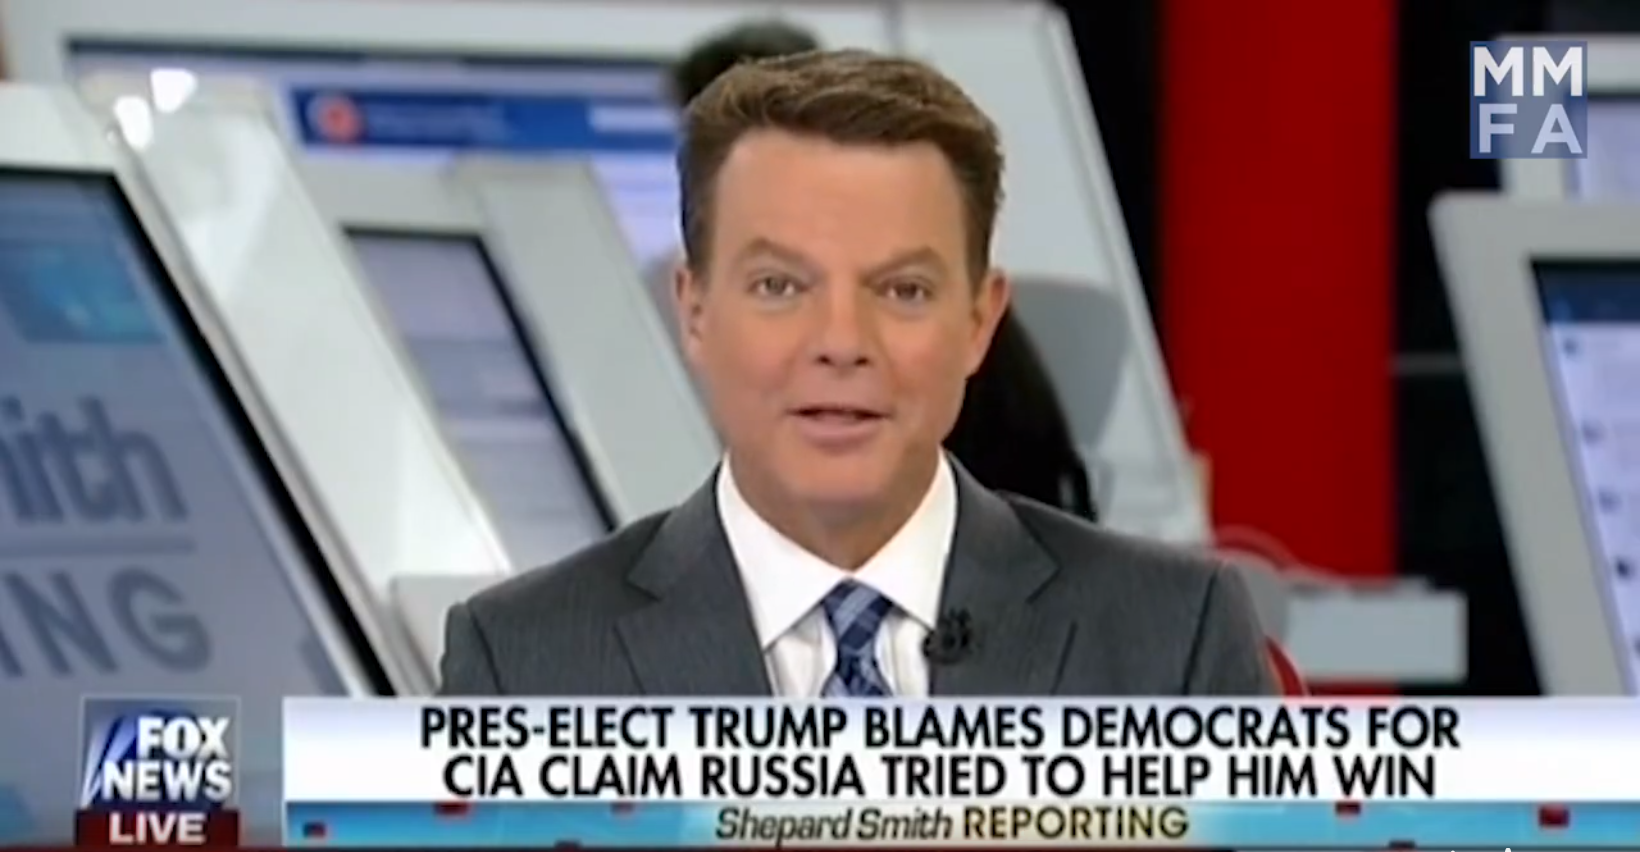 Video: Even Fox News Calls Bullshit on Trump's Response to Russia's Election Hacks